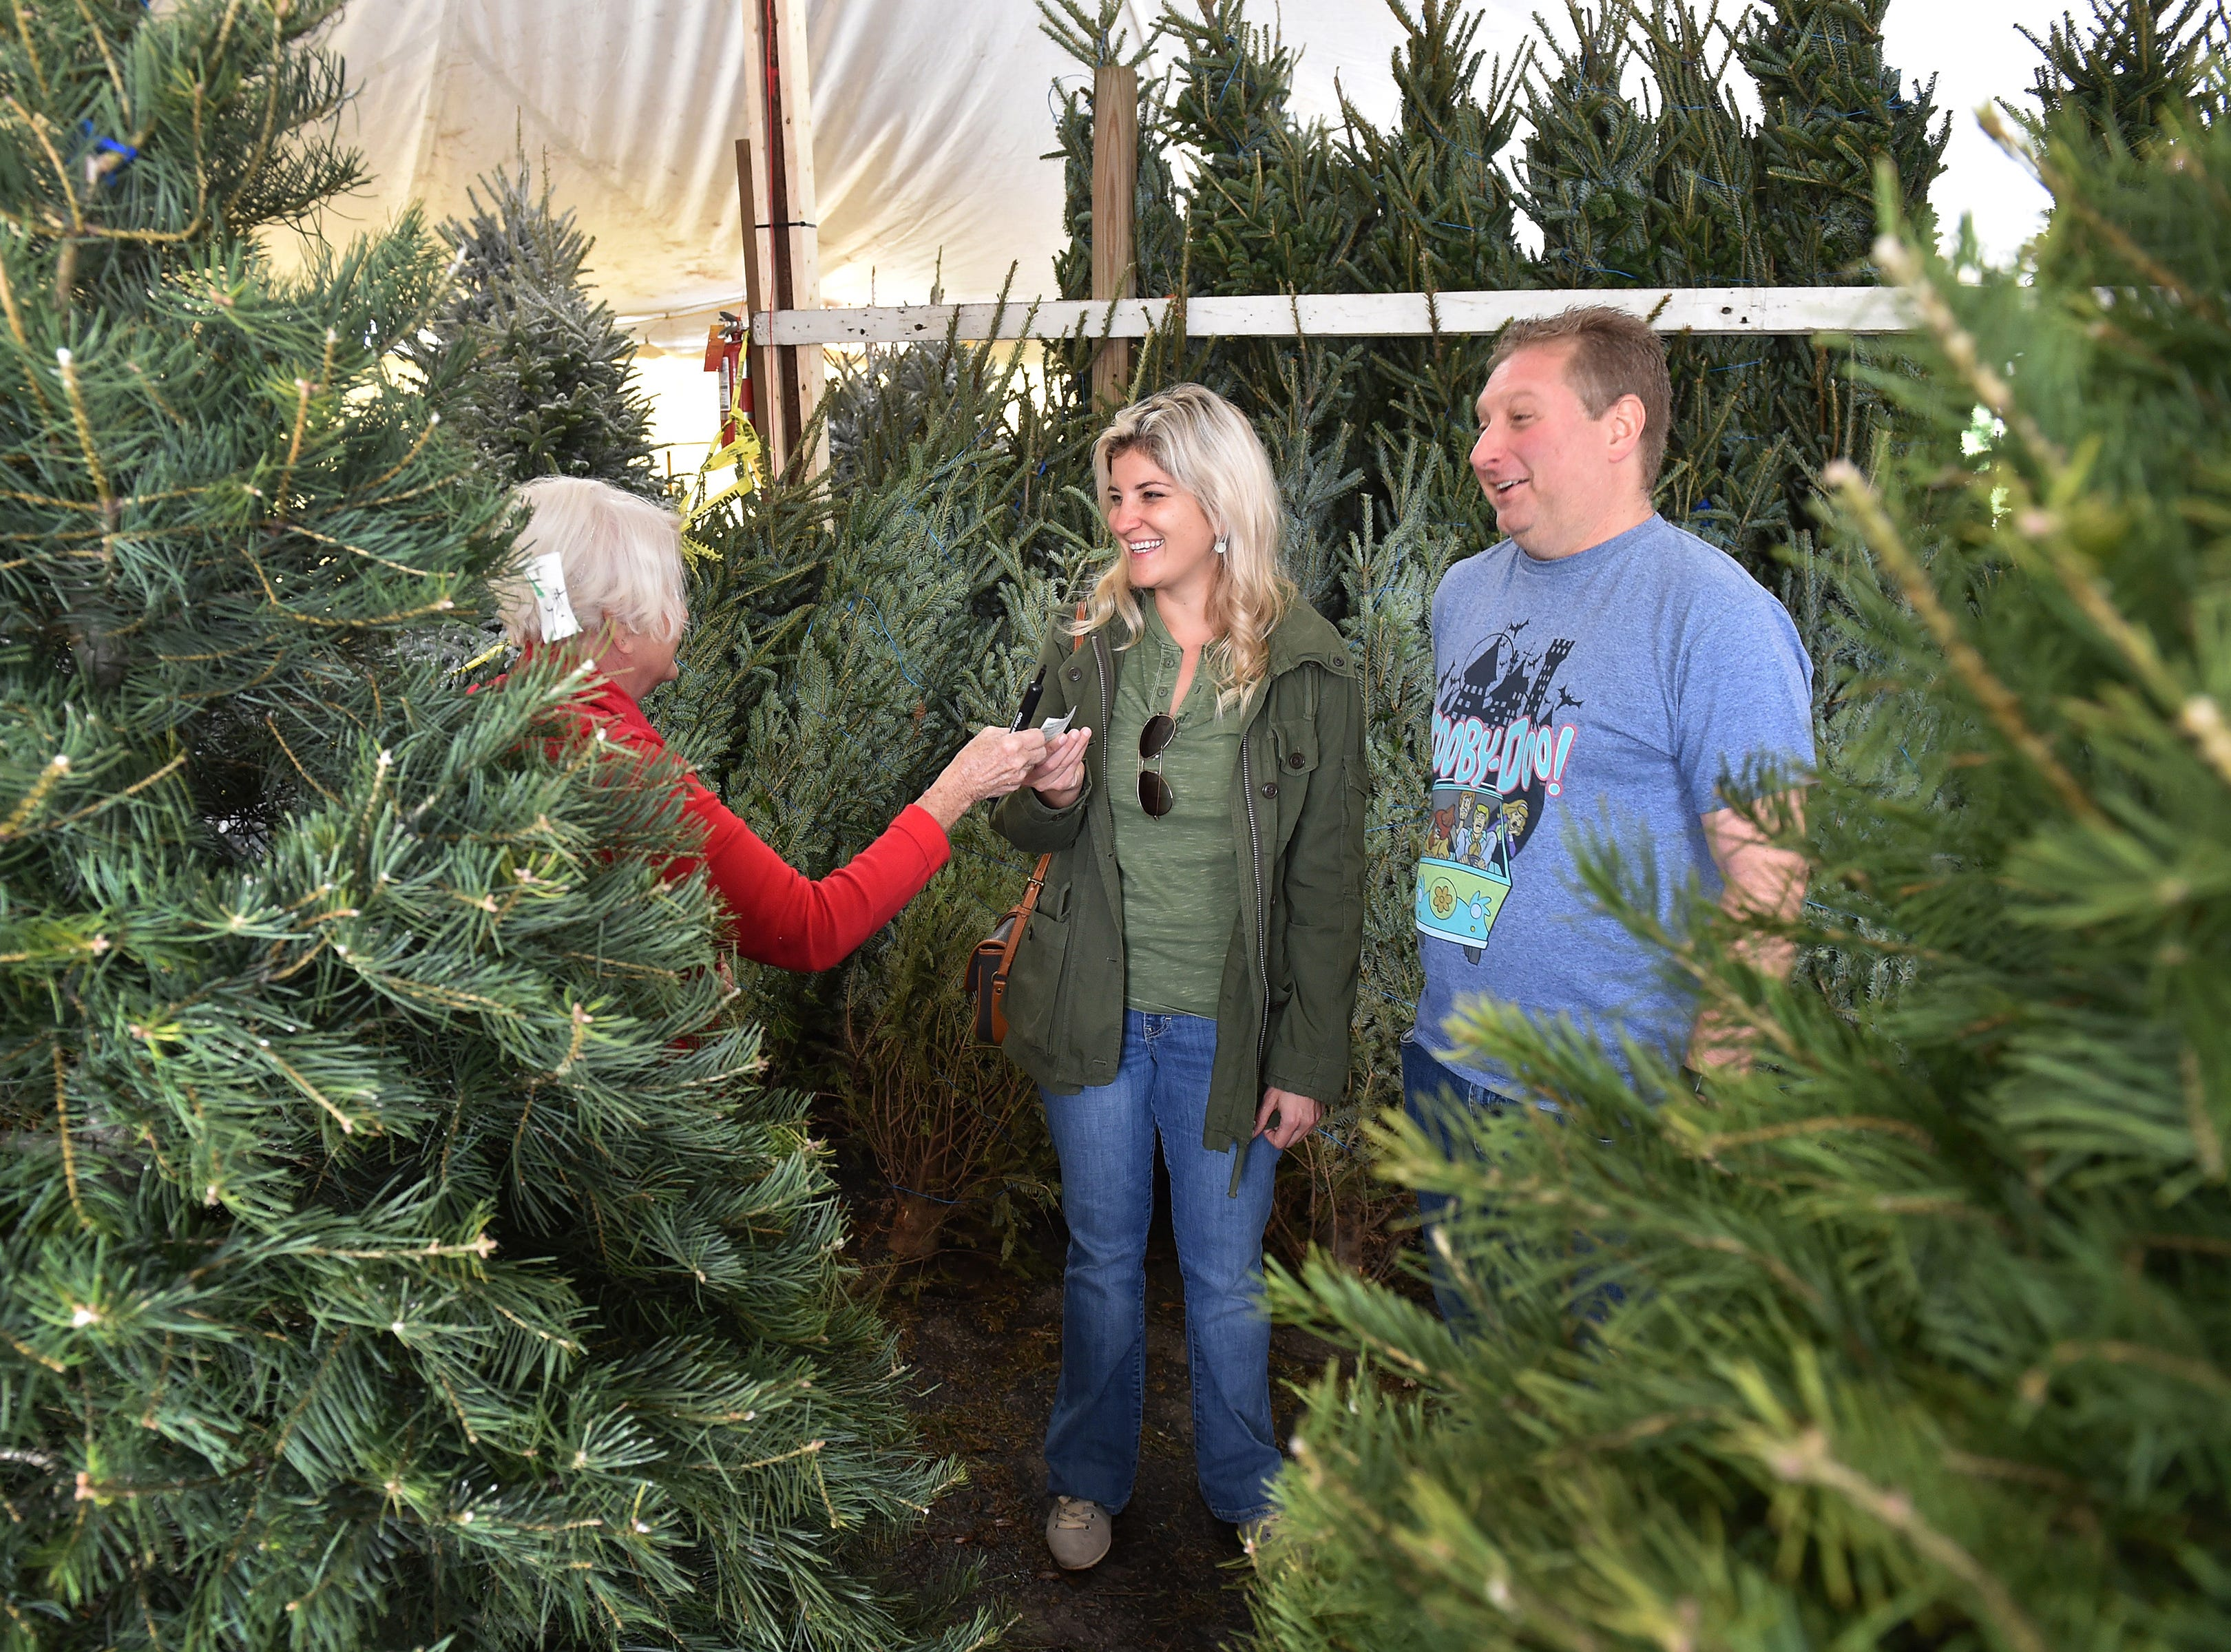 "Caroline Smith (center) and her boyfriend Robert Meitzer pick out the perfect Fraser Fir Christmas tree from Brenda Hodge, owner of Hodge Podge Trees at the Kmart Plaza parking lot in the 1600 block of US 1 on Tuesday, Nov. 27, 2018, in Vero Beach. ""First Christmas Tree, bought it together, looking forward to decorating it with some schnapps and a hot chocolate,"" Meitzer said. The couple from Vero Beach picked out their first Christmas tree together on their day off work as cooler temperatures from a weather front moved south across the Treasure Coast."